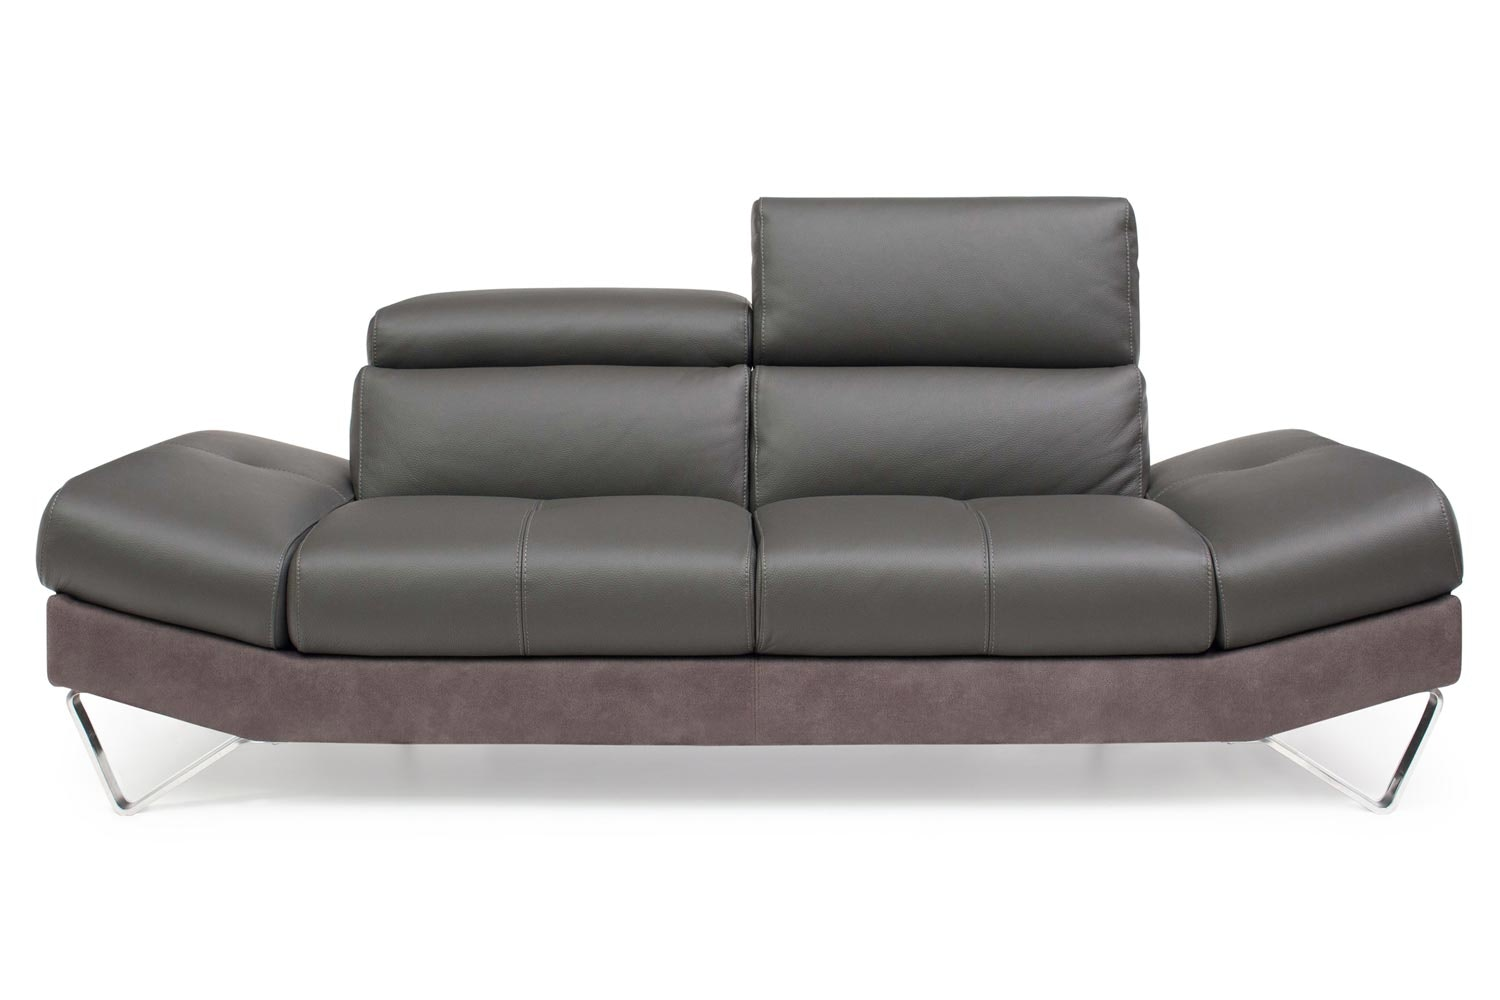 Miro 2 Seater | Anthracite